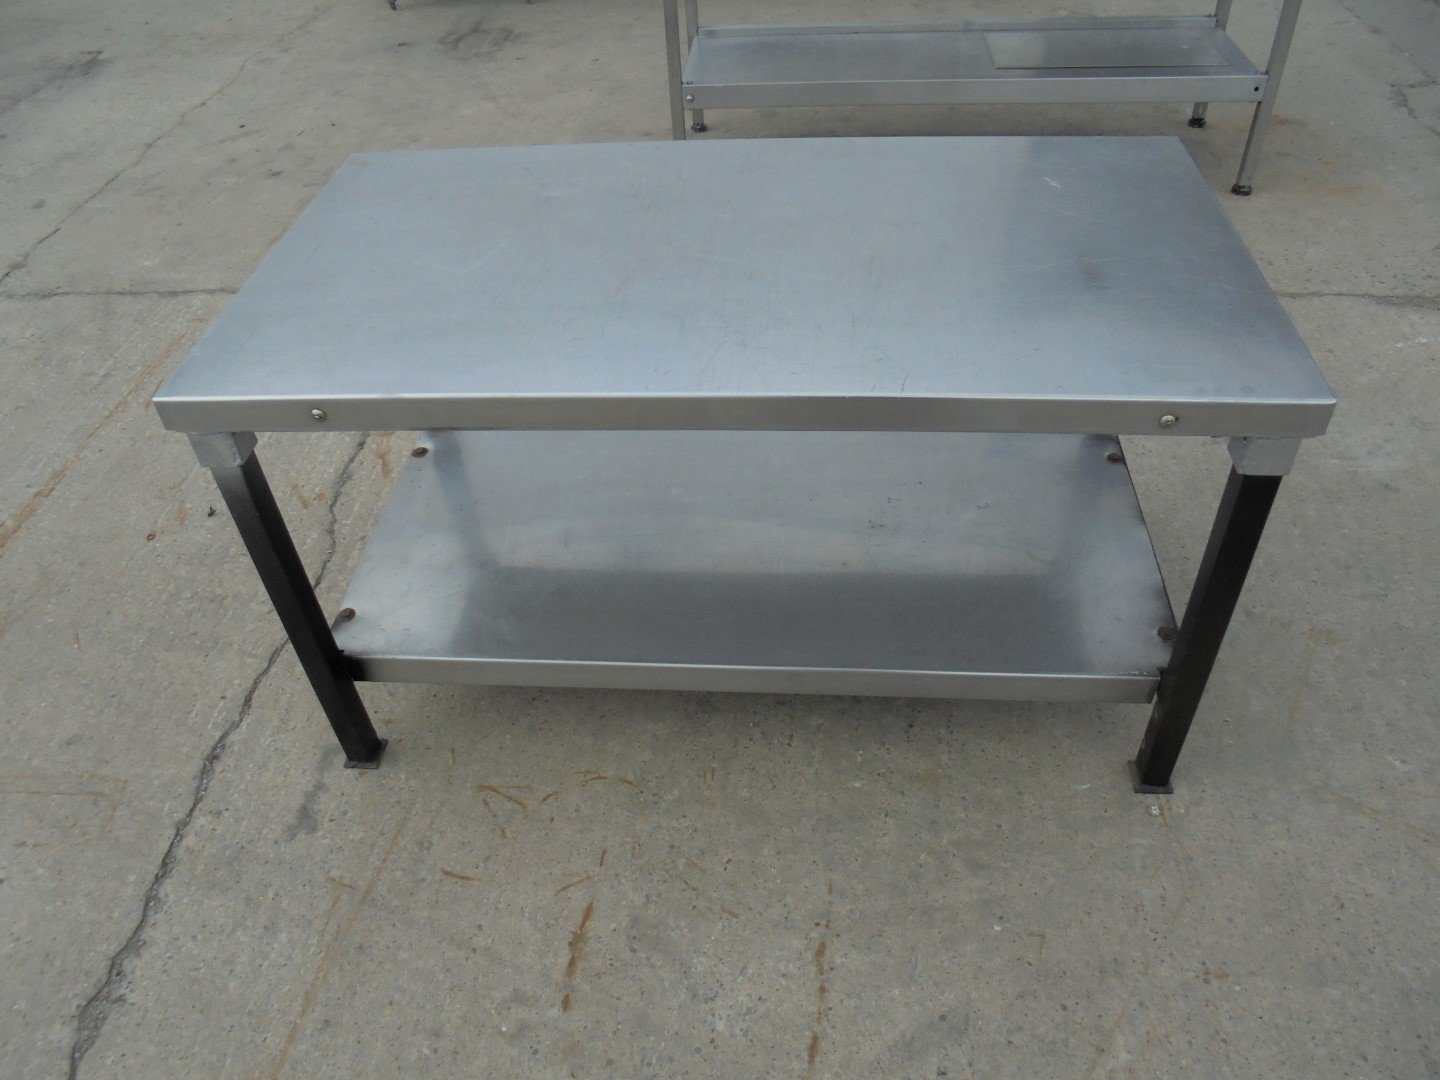 Stainless Steel Low Table Stand 115cmw X 61cmd X 64cmh